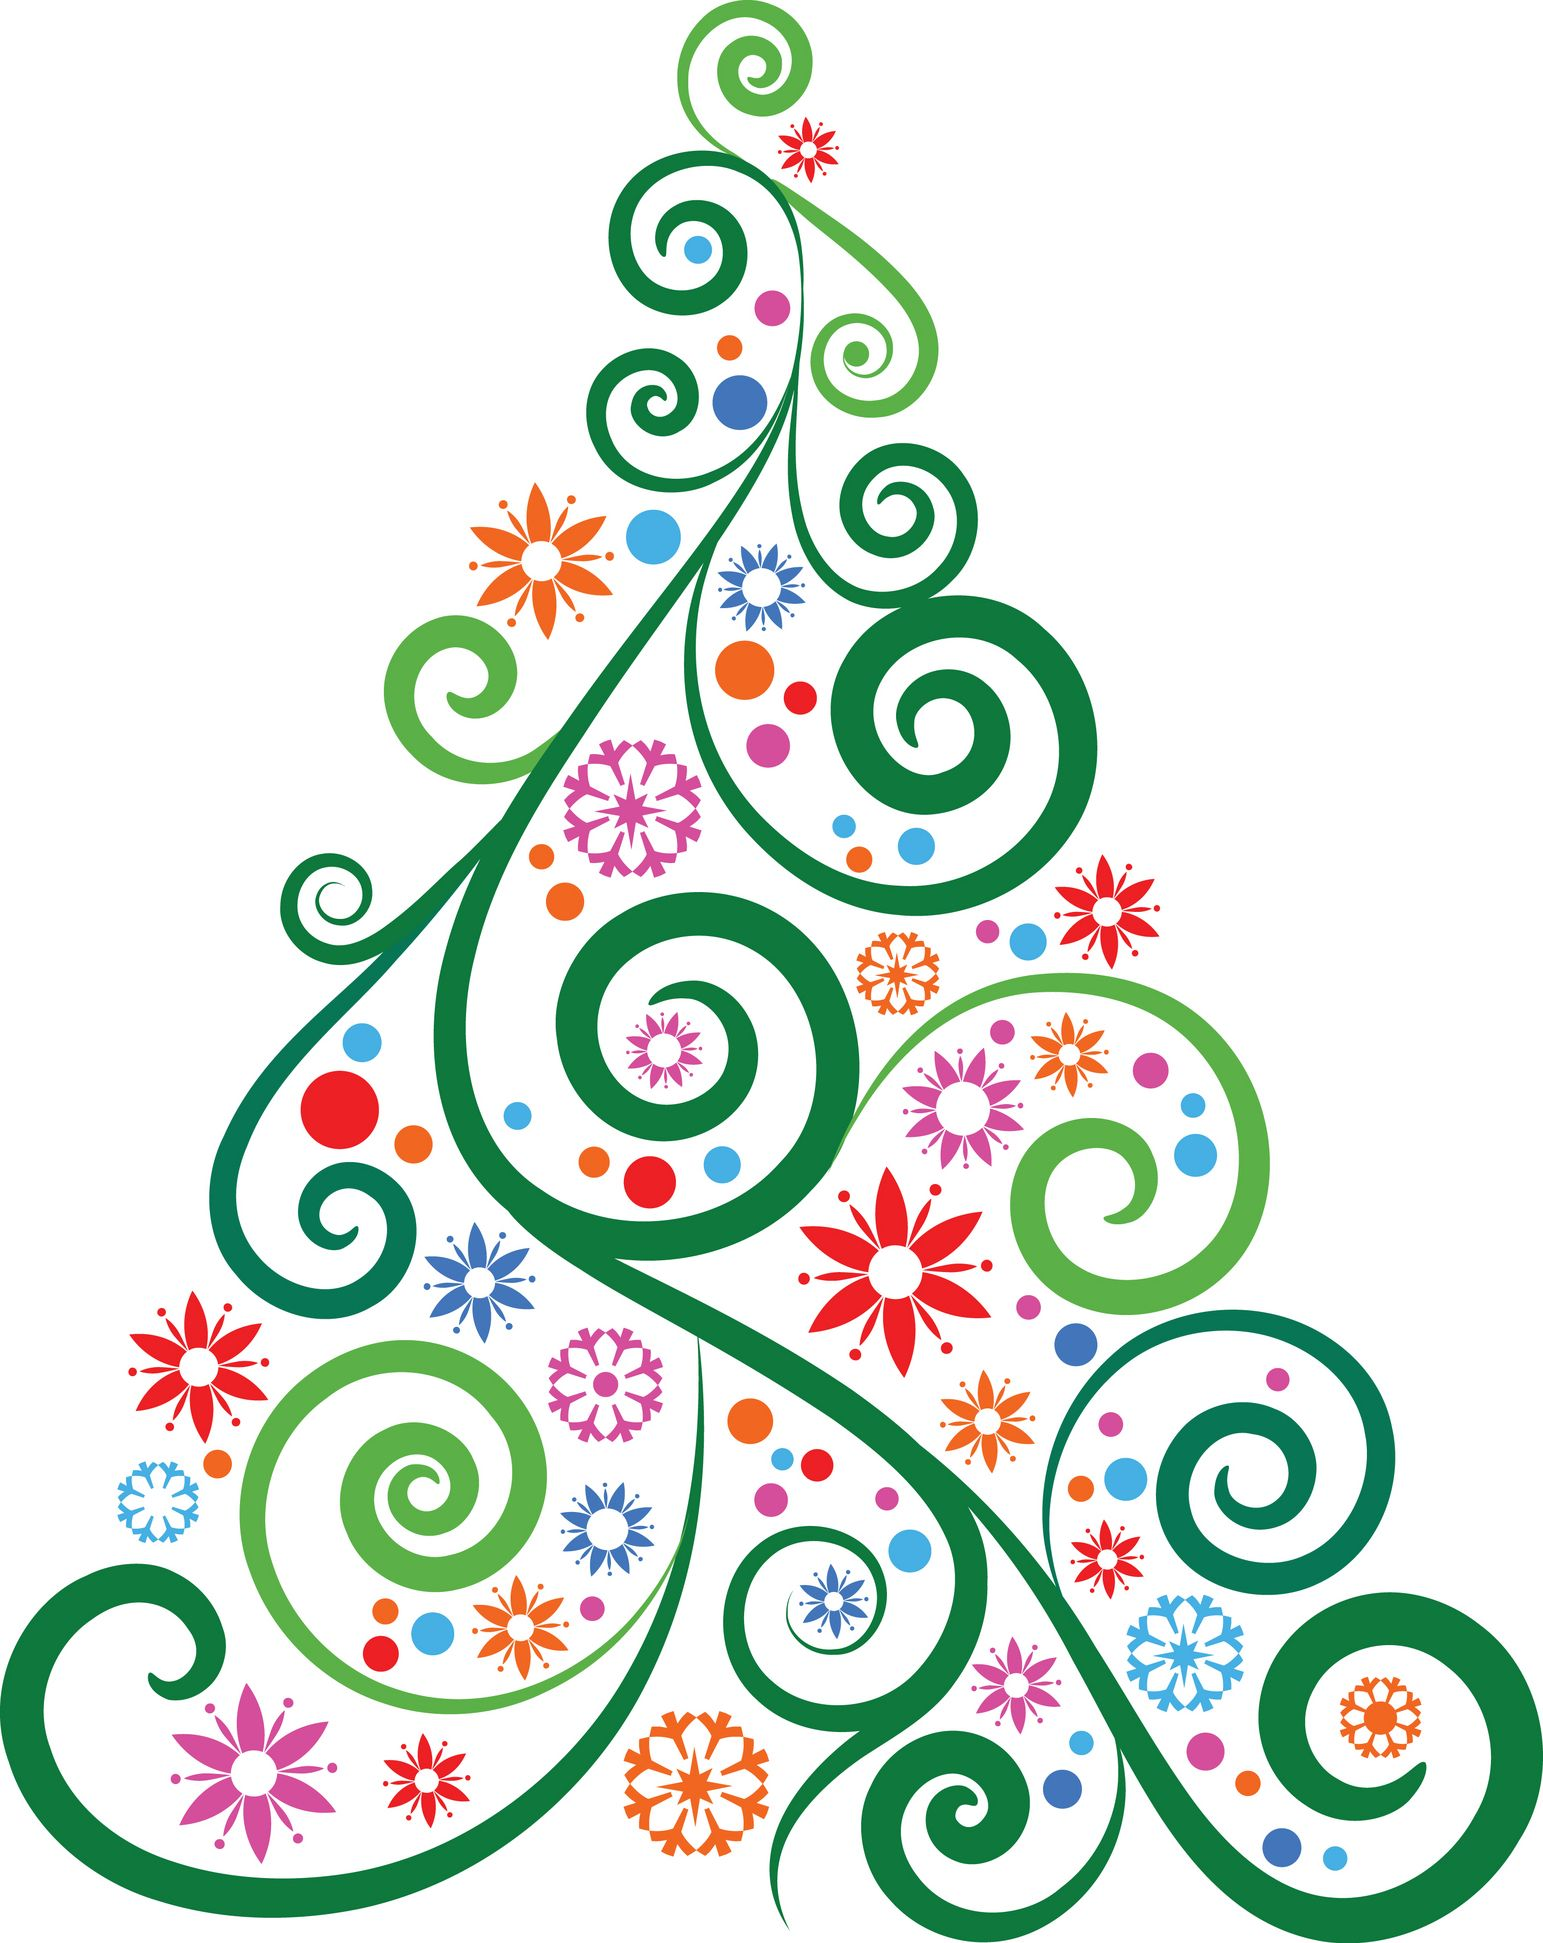 Auction Clipart Free Download Clip Art Free Clip Art On Cross Stitch Tree Cross Christmas Tree Cross Stitch Kits